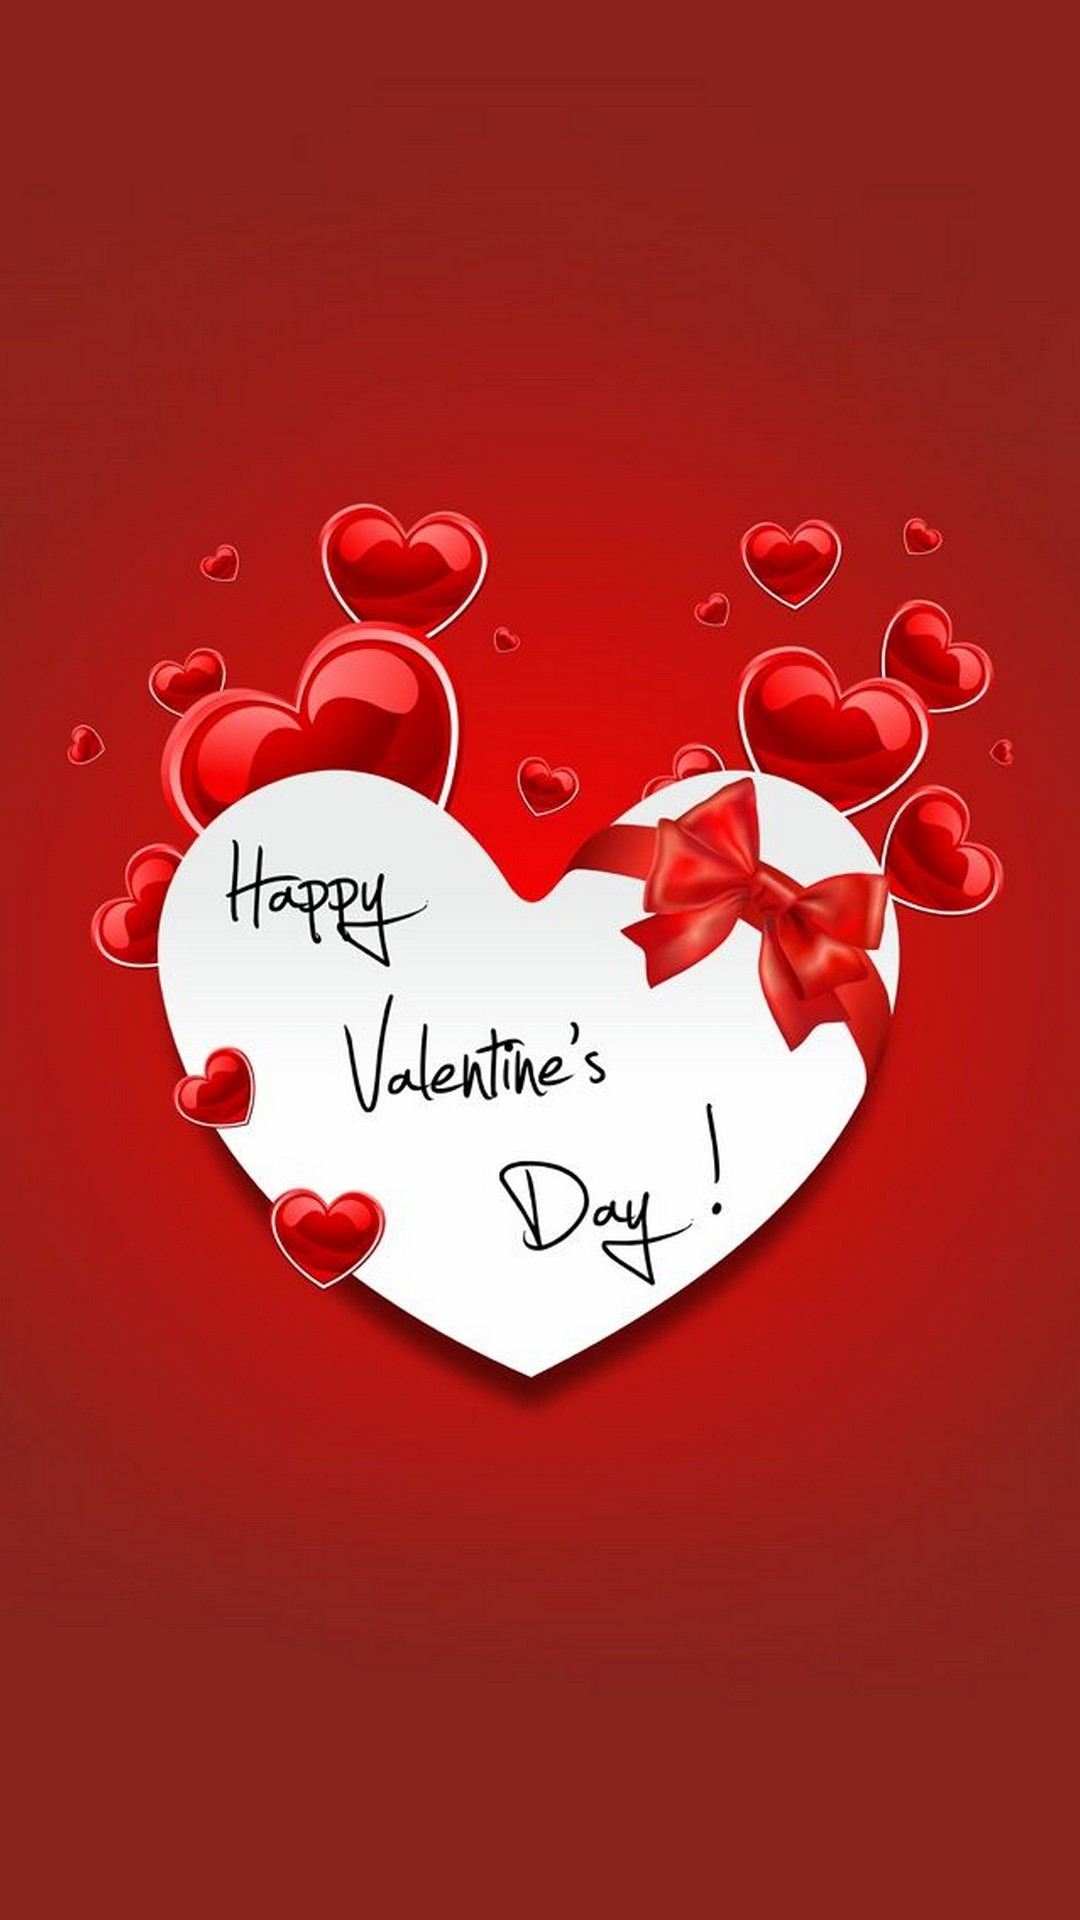 Wallpaper Happy Valentines Day Images Android   2020 Android 1080x1920